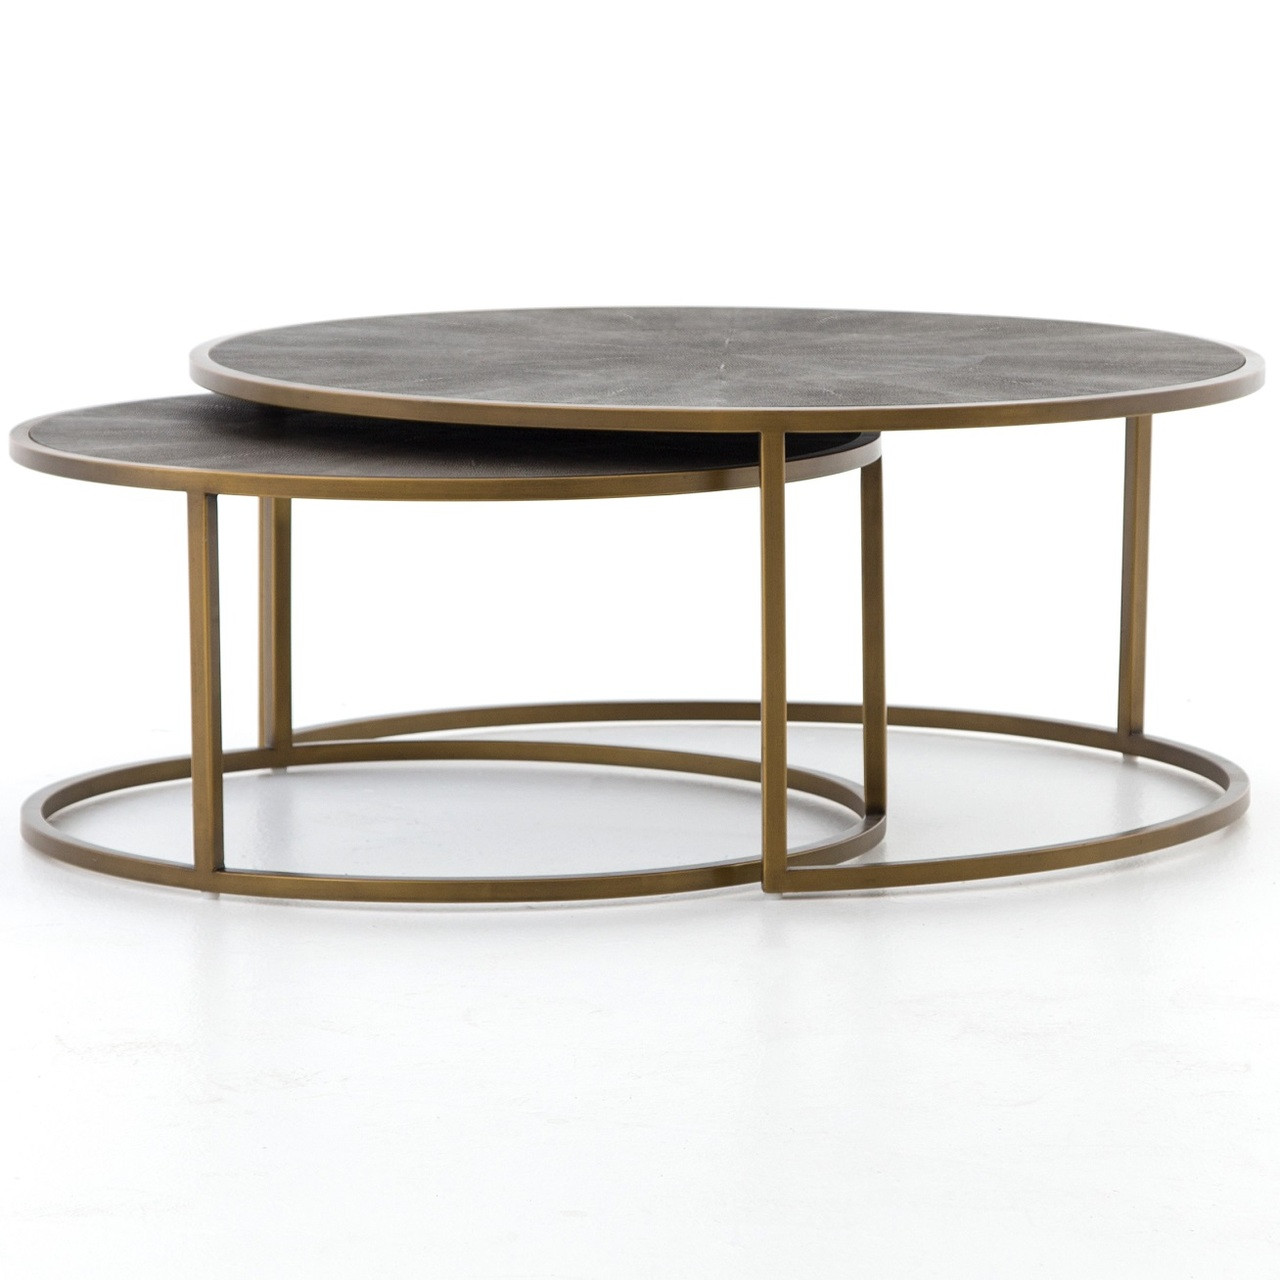 Ideal Hollywood Modern Shagreen Nesting Coffee Tables - Brass | Zin Home LR74